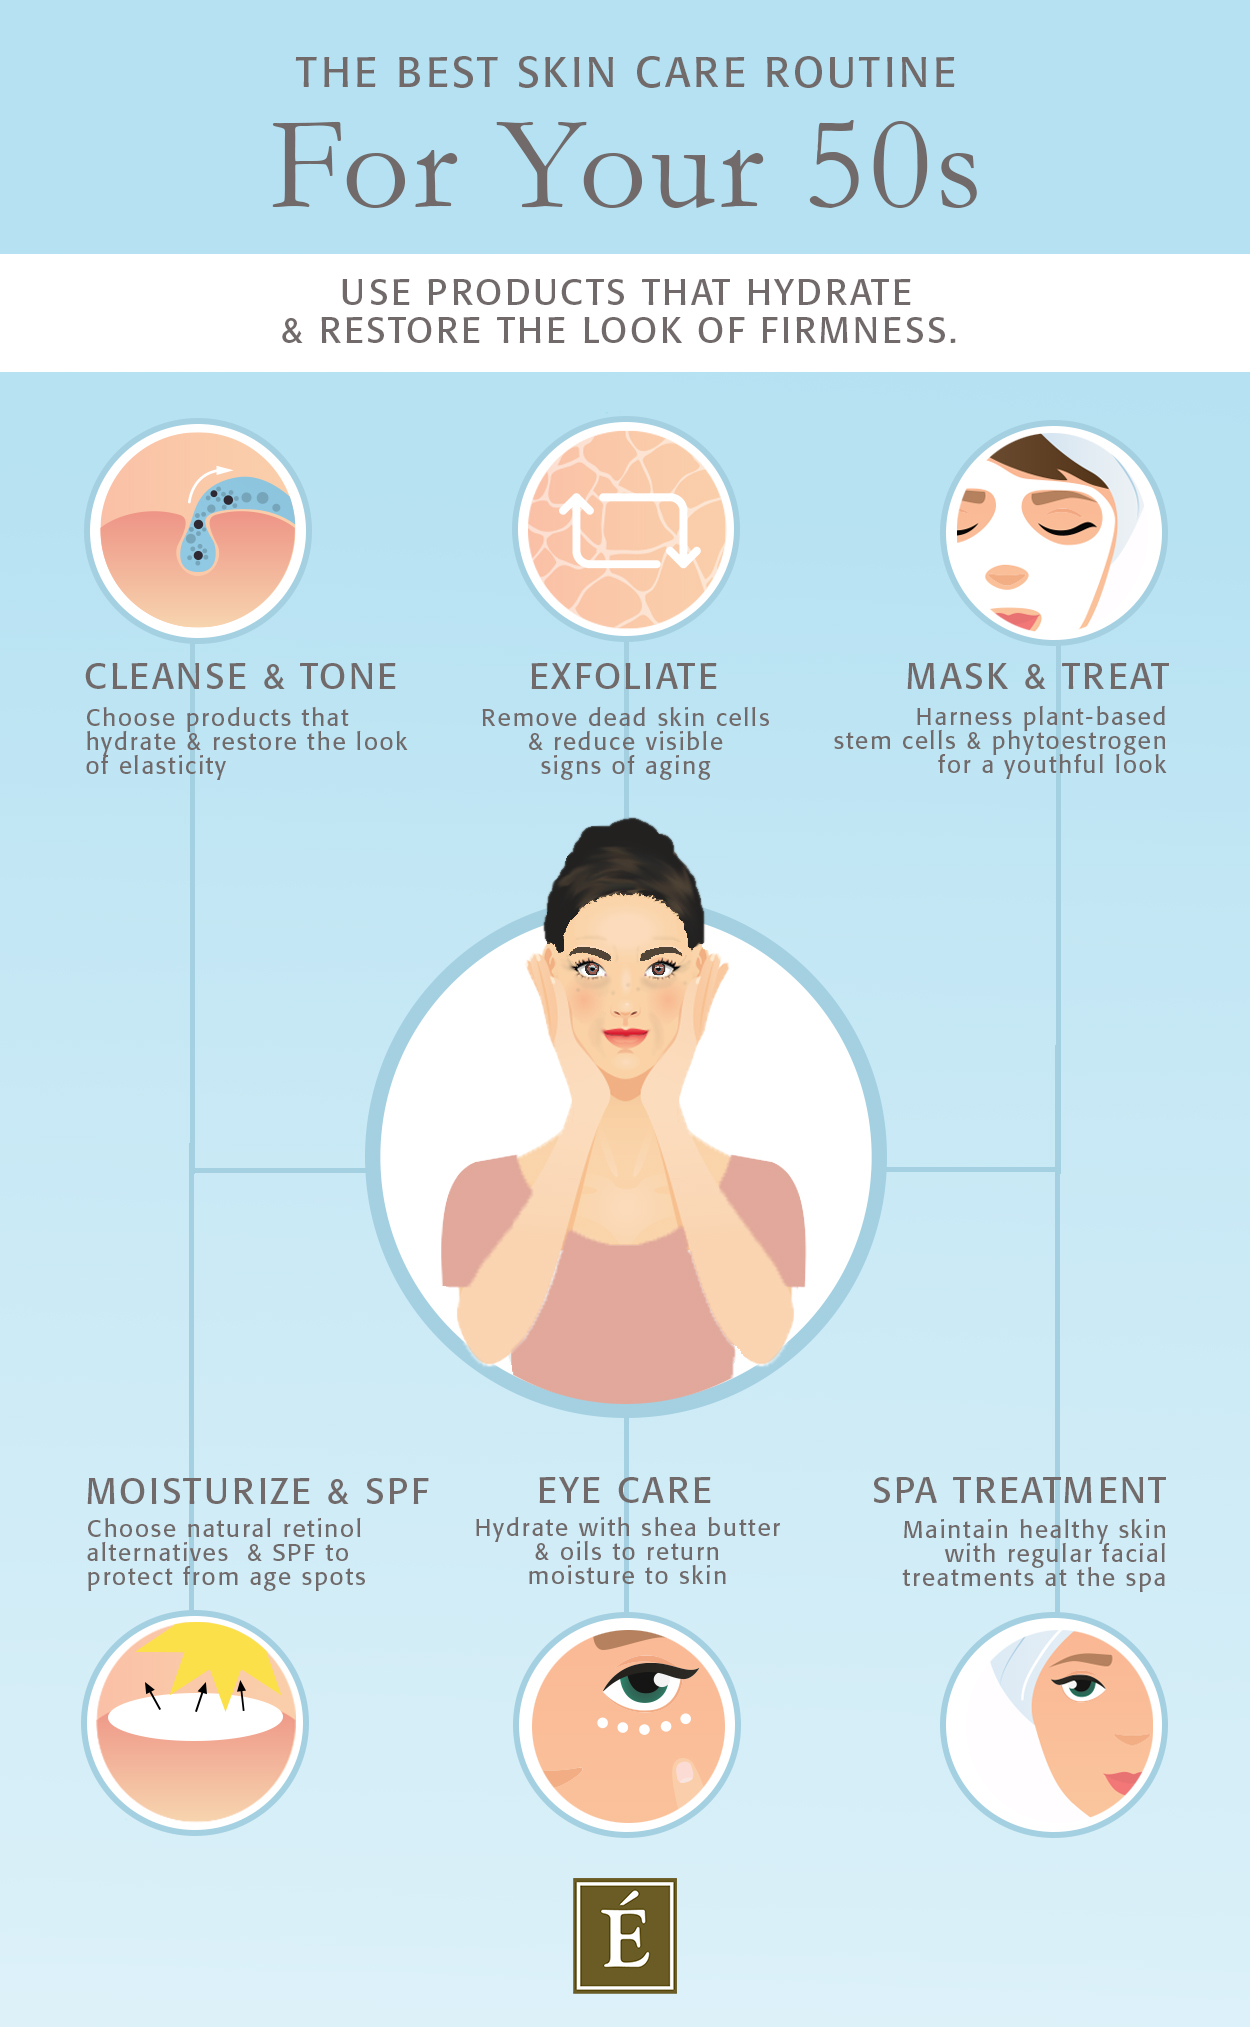 The best skin care routine for your 50s infographic